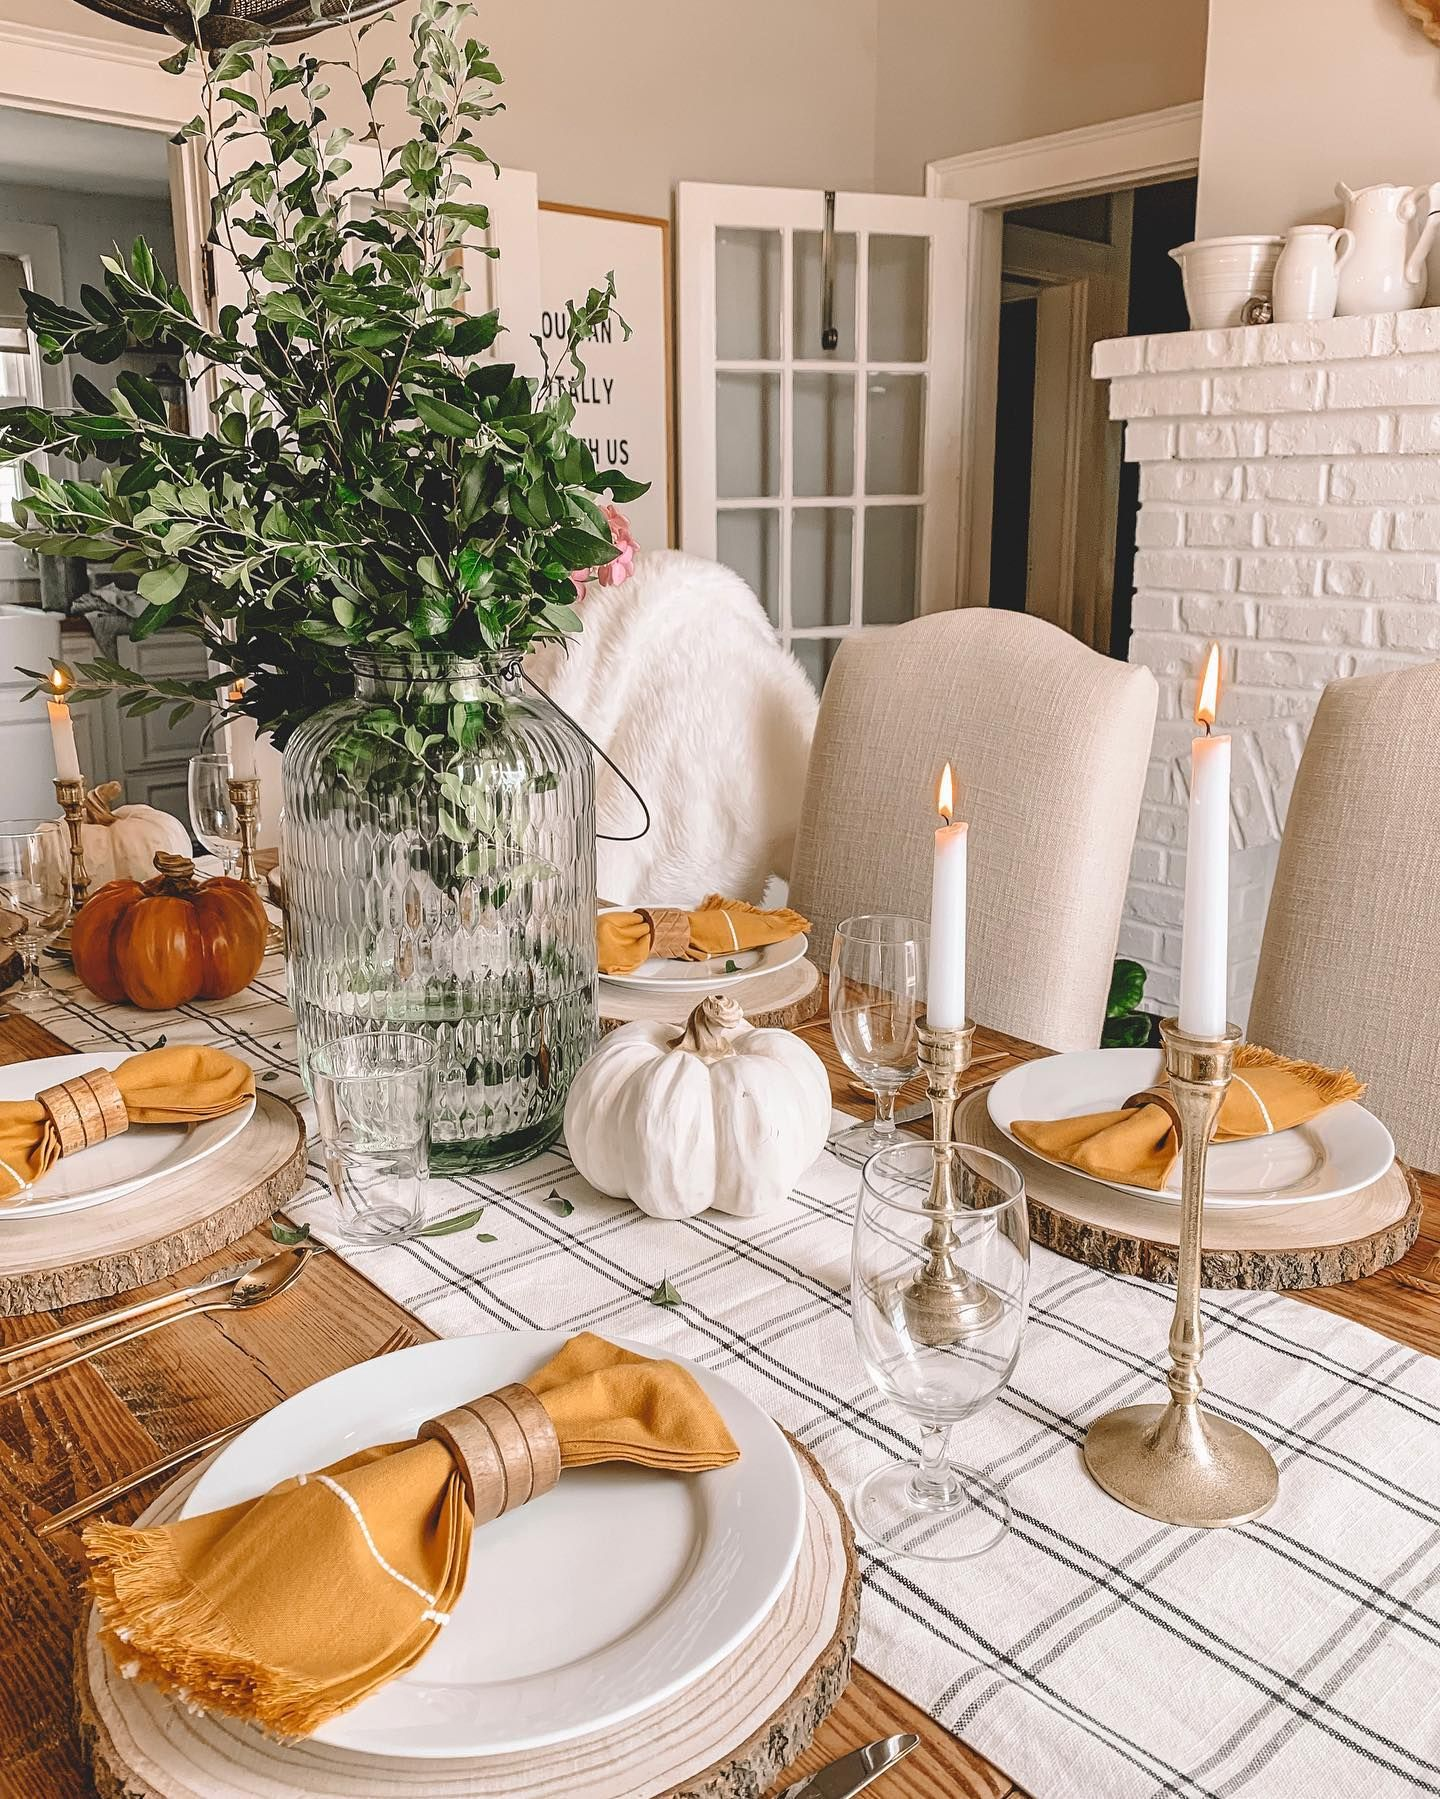 Fall is one of my favorite seasons to decorate for